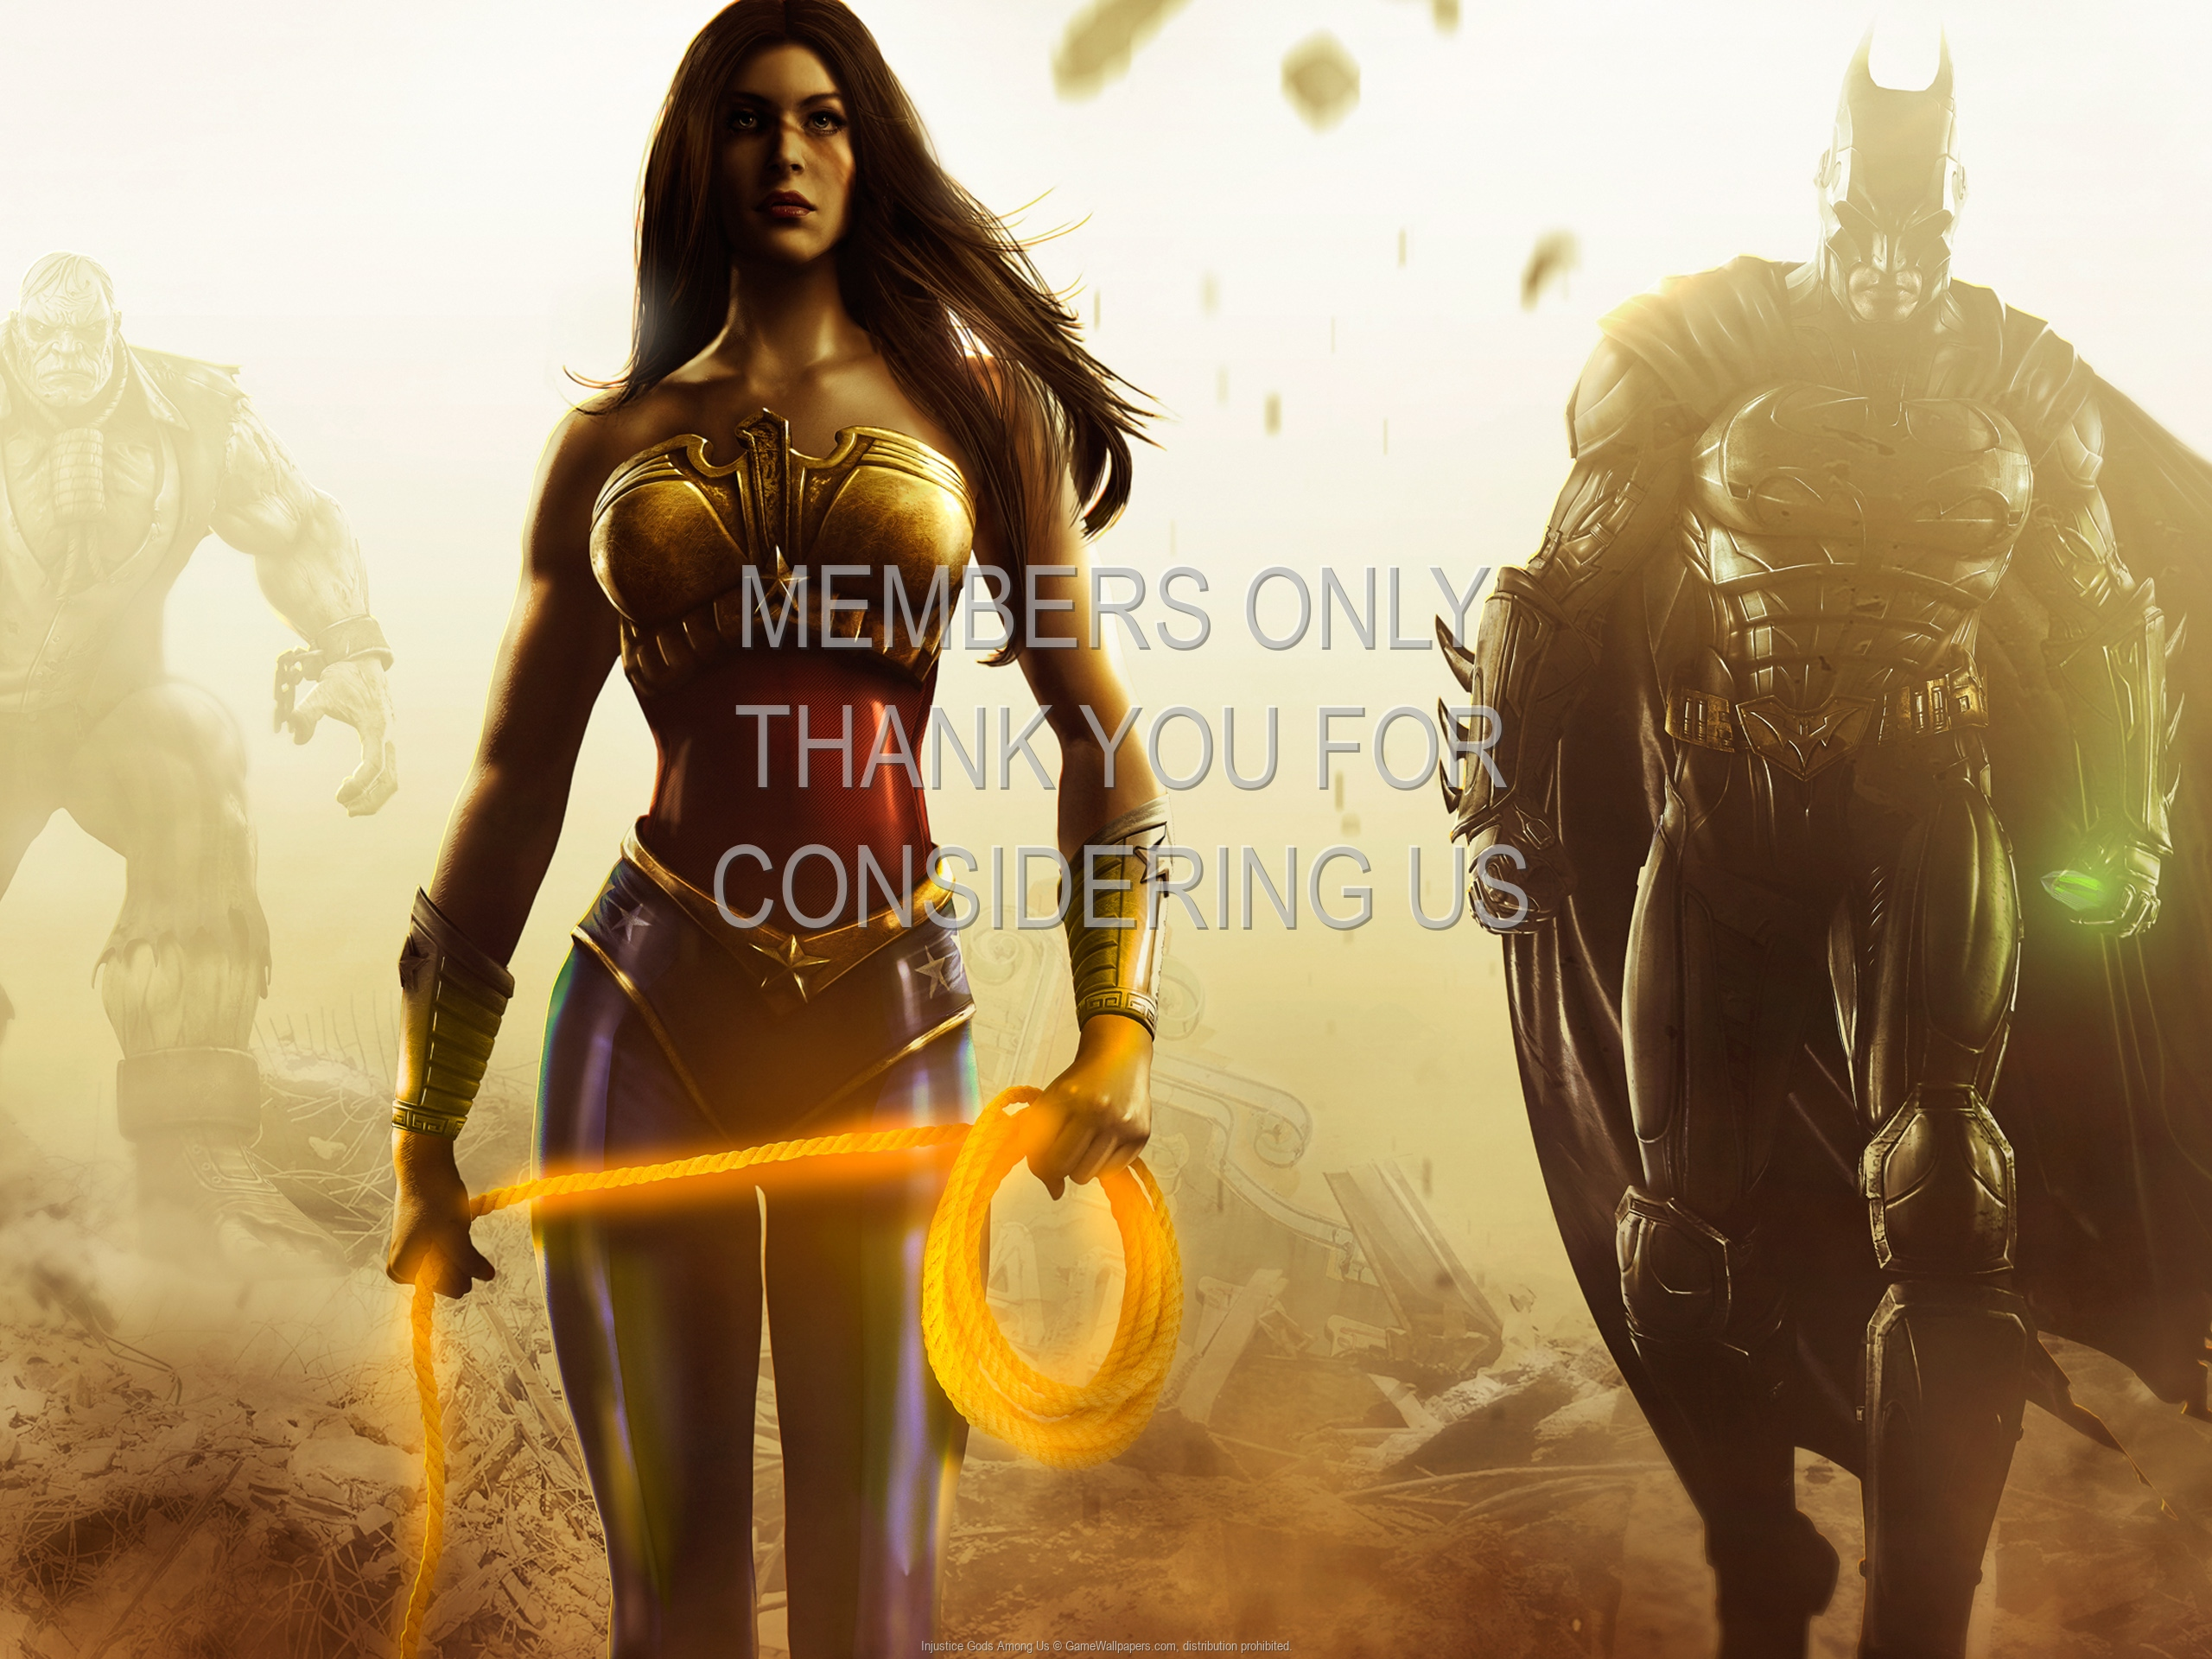 Injustice: Gods Among Us 1920x1080 Mobile wallpaper or background 05